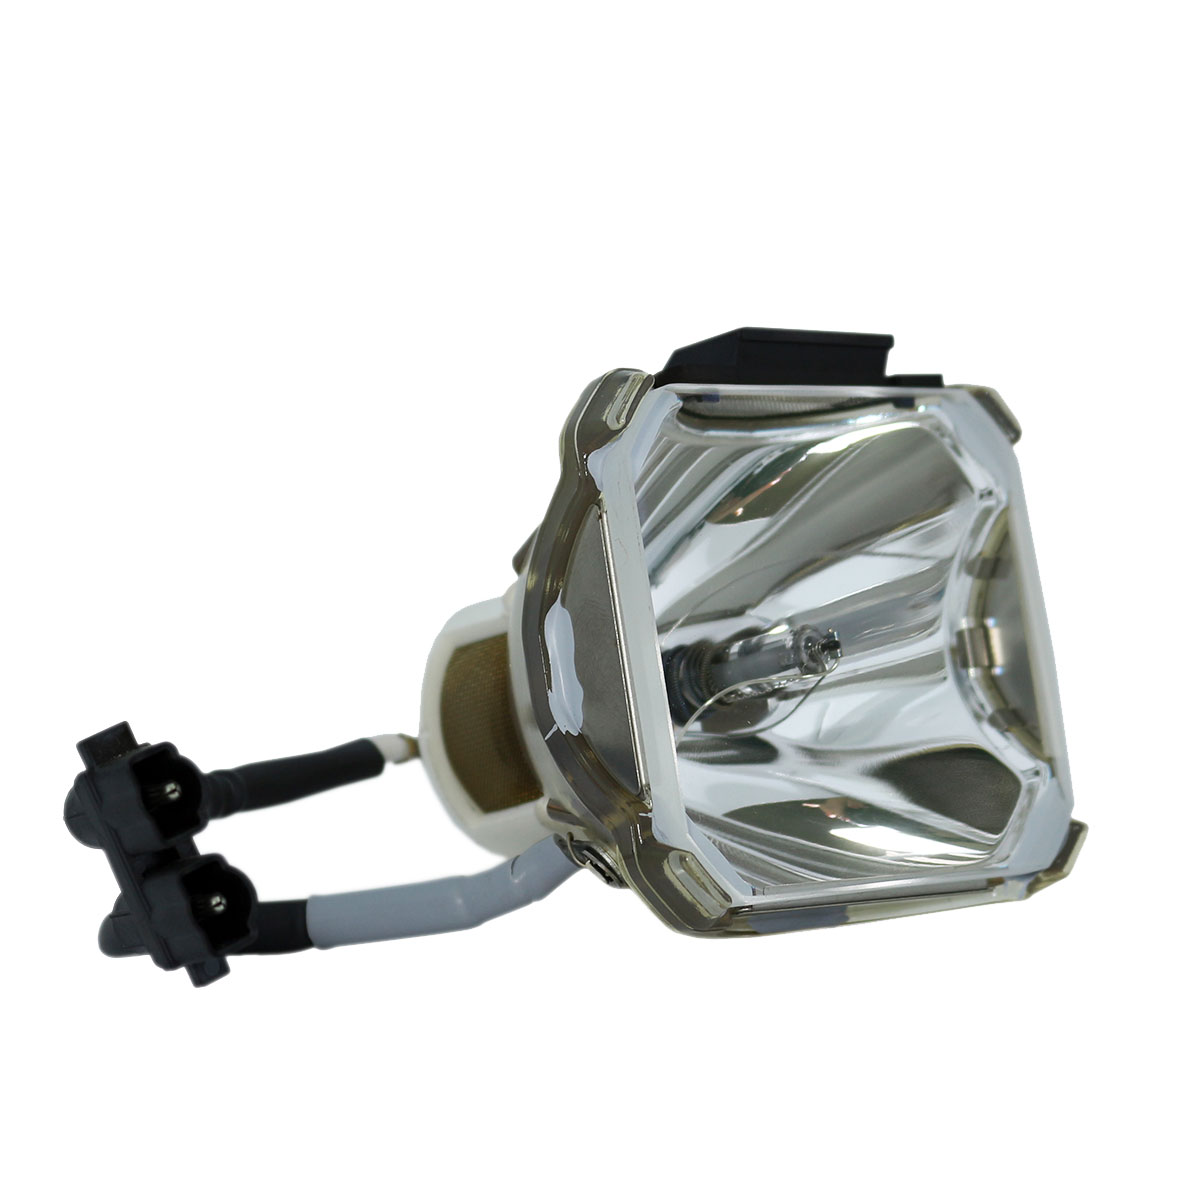 Compatible Bare Bulb EP8790LK 78-6969-9601-2 for 3M MP8790 Projector Lamp Bulbs without housing